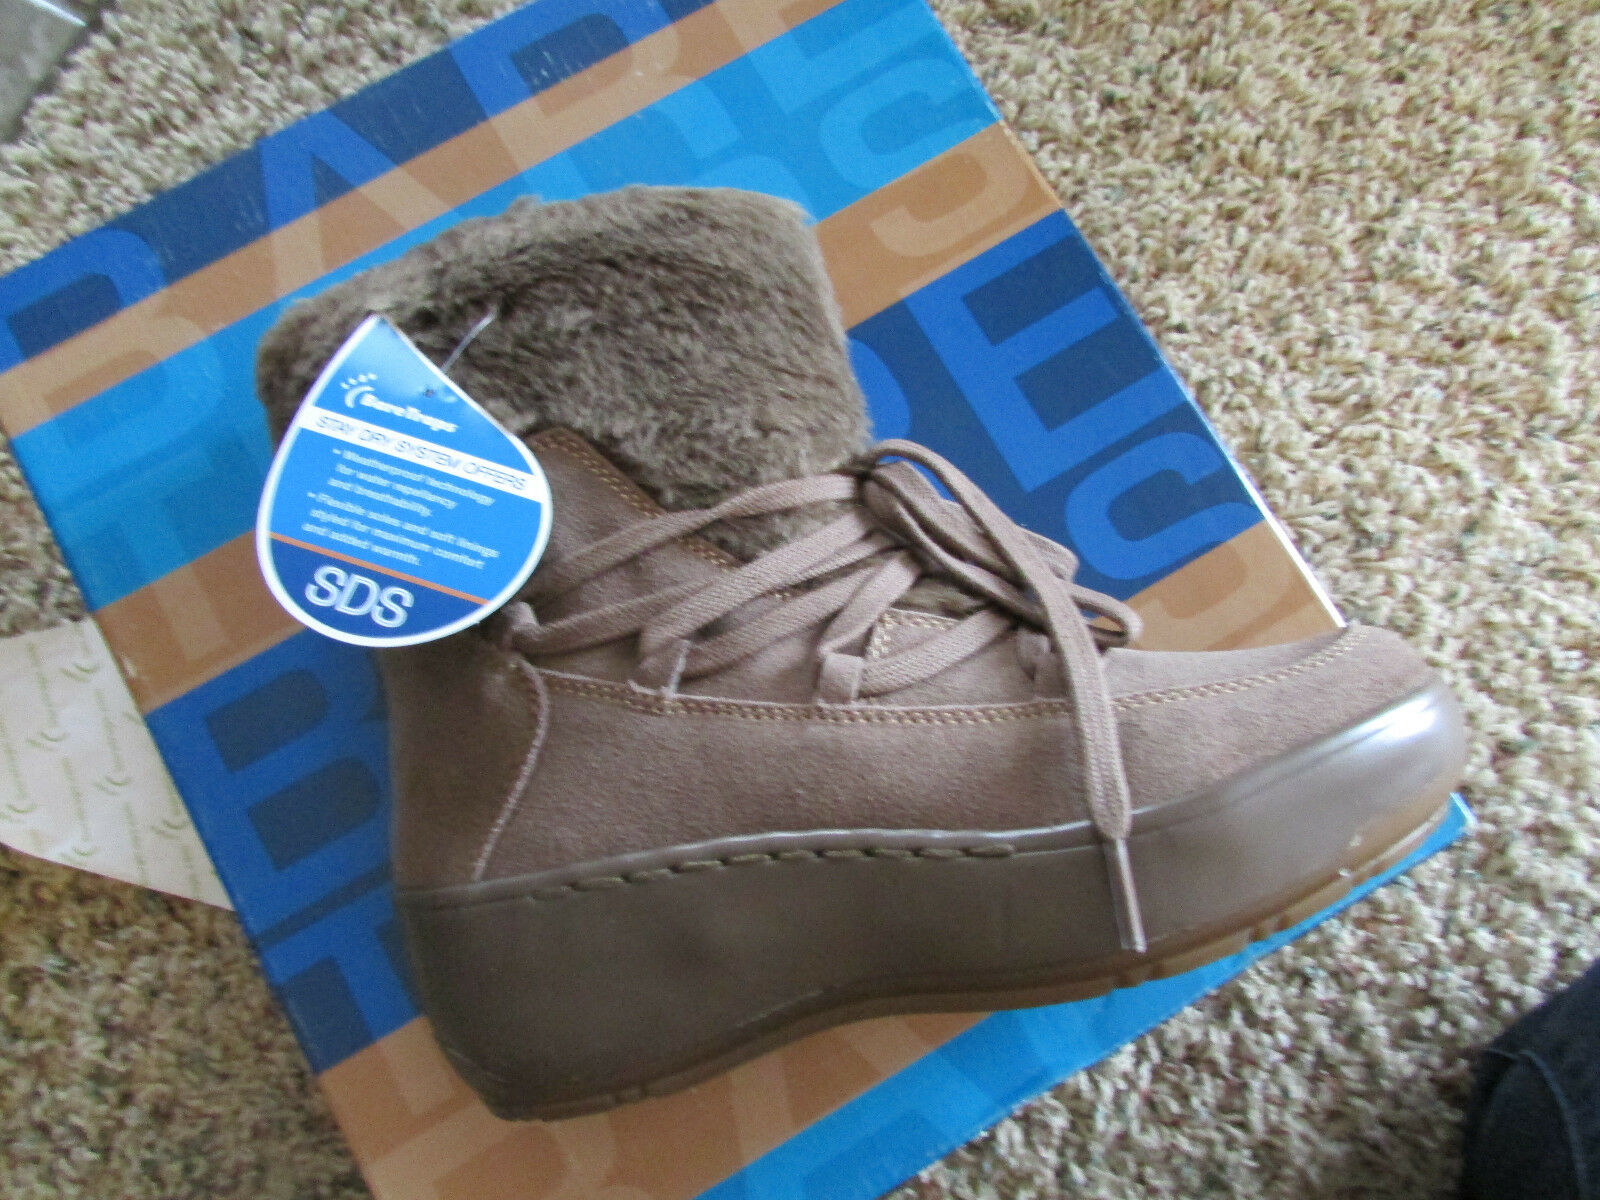 NEW BARETRAPS STAY DRY FLURRY LEATHER BOOTS WOMENS 8.5  SUEDE